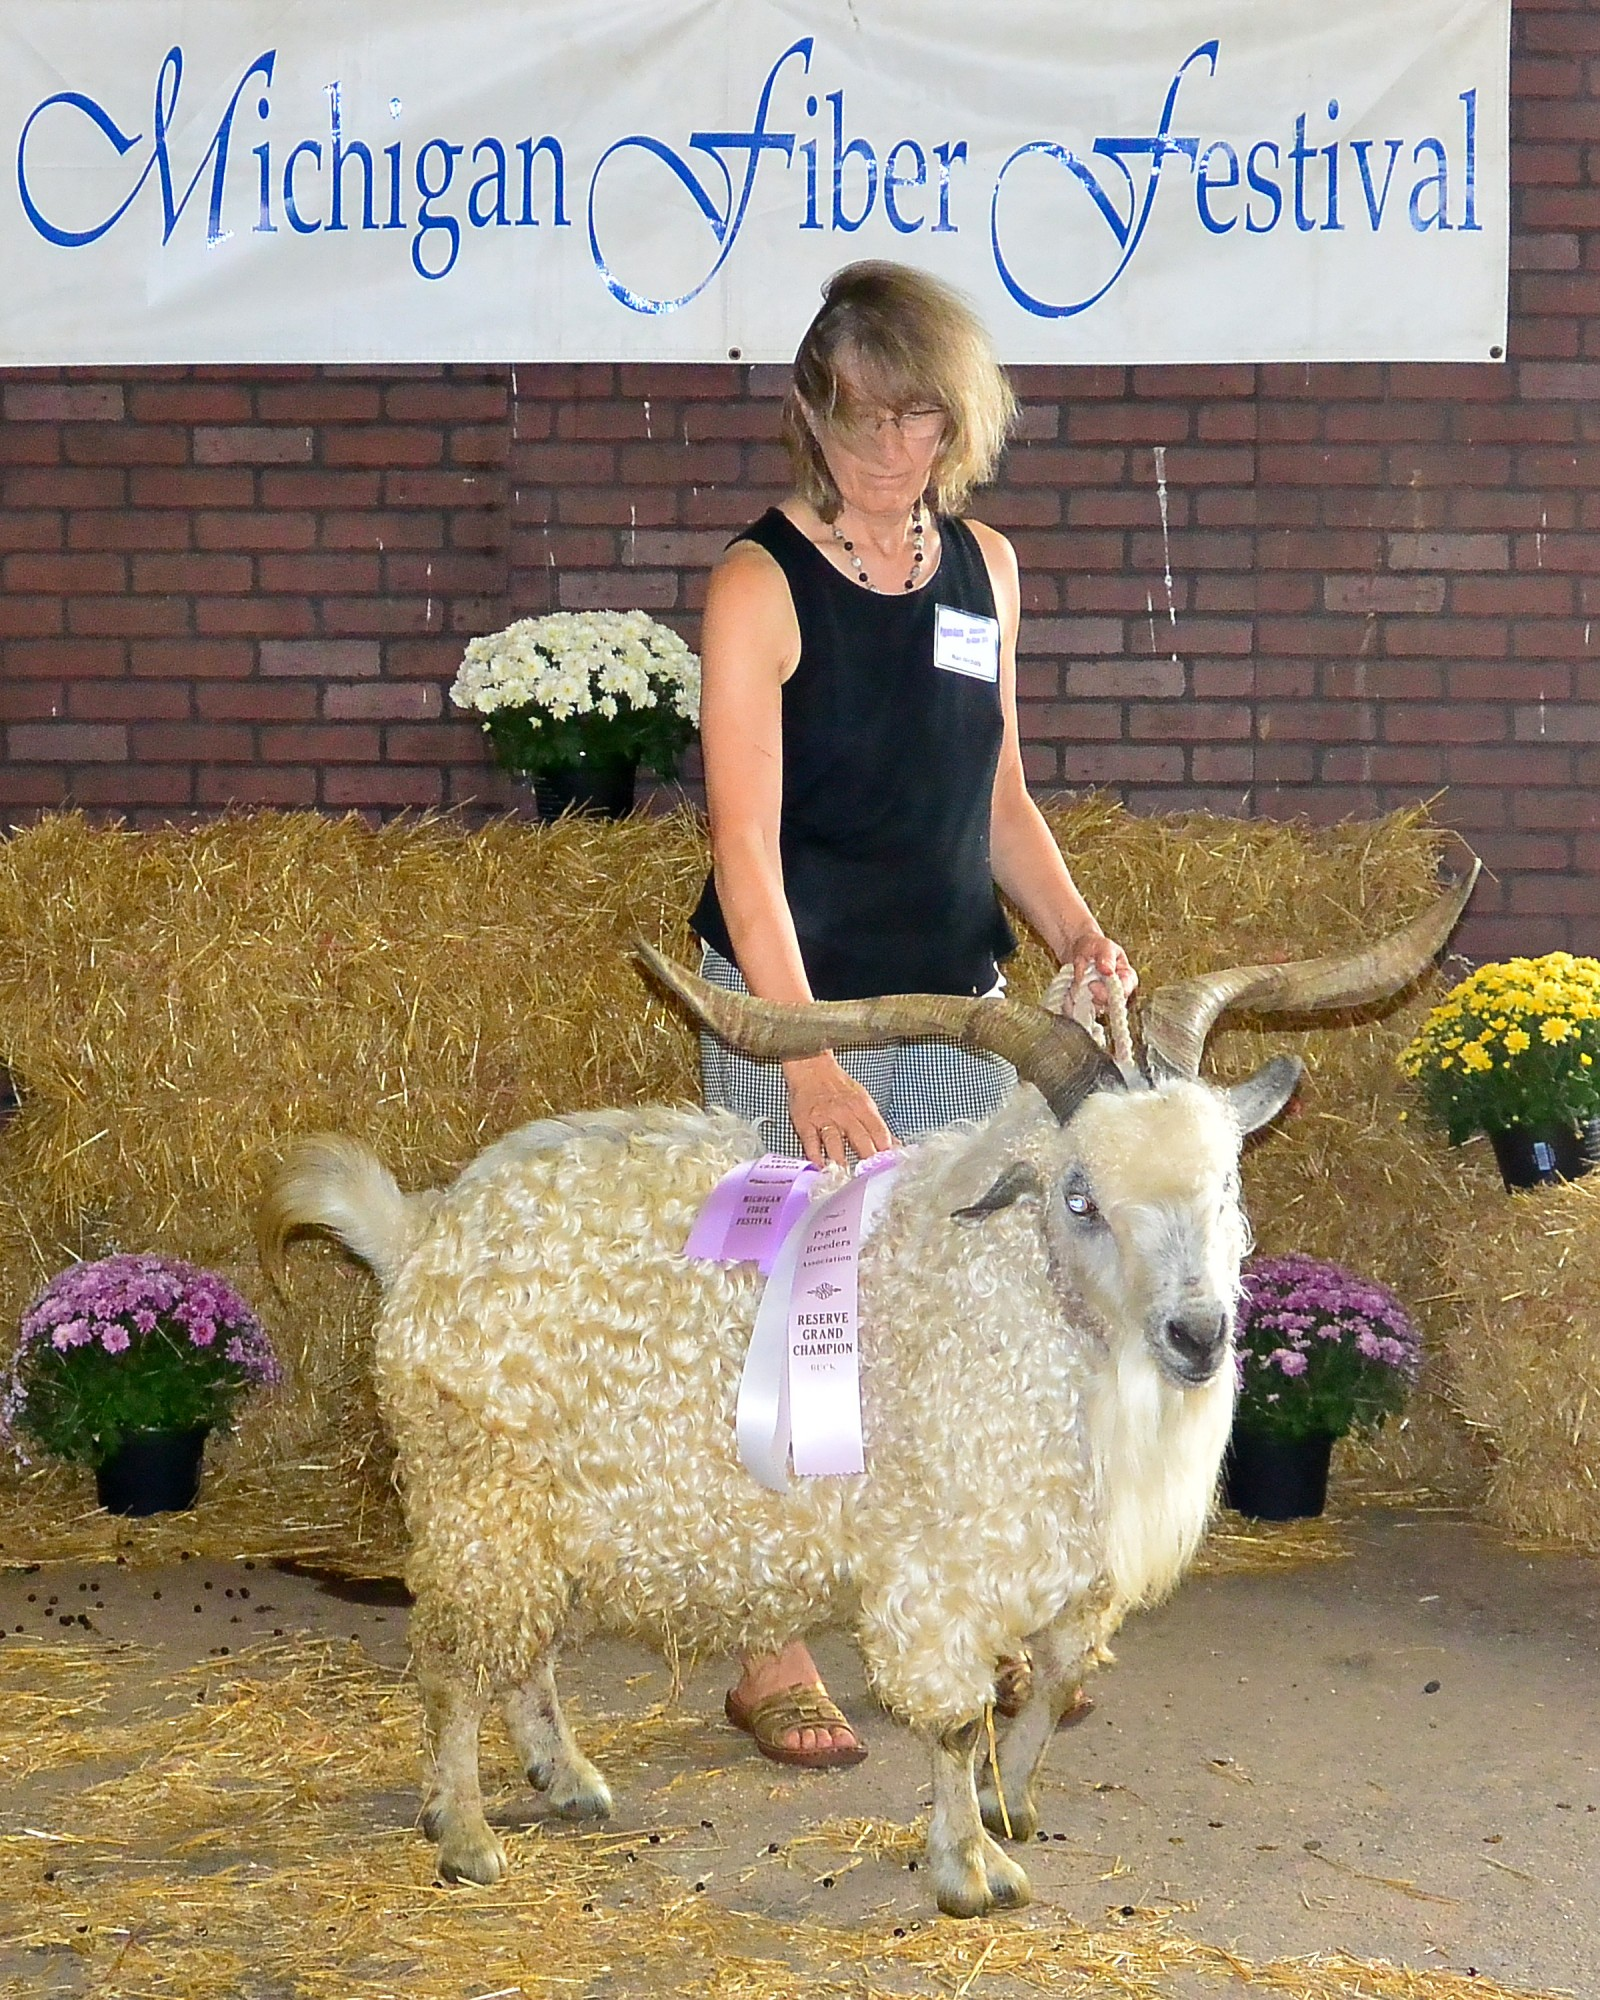 Gun Plain Pygoras Abe took Reserve Grand Champion buck at the 2015 Michigan Fiber Festival.